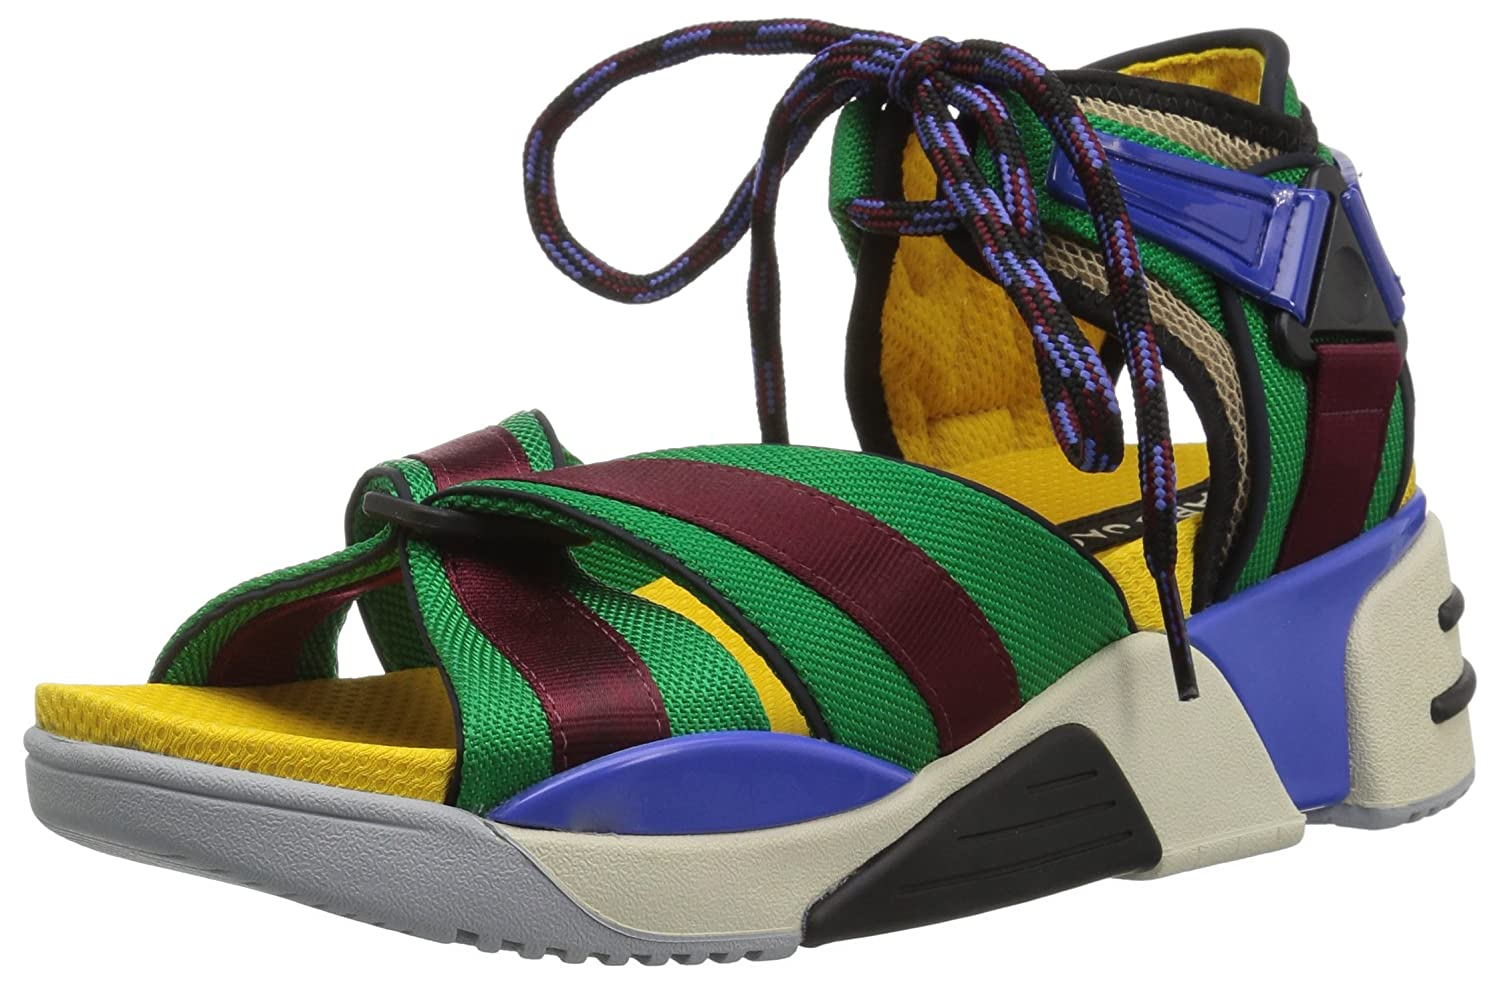 Marc Jacobs Women's Somewhere Sport Sandal B0781YYMVJ 35 M EU (5 US)|Blue/Multi